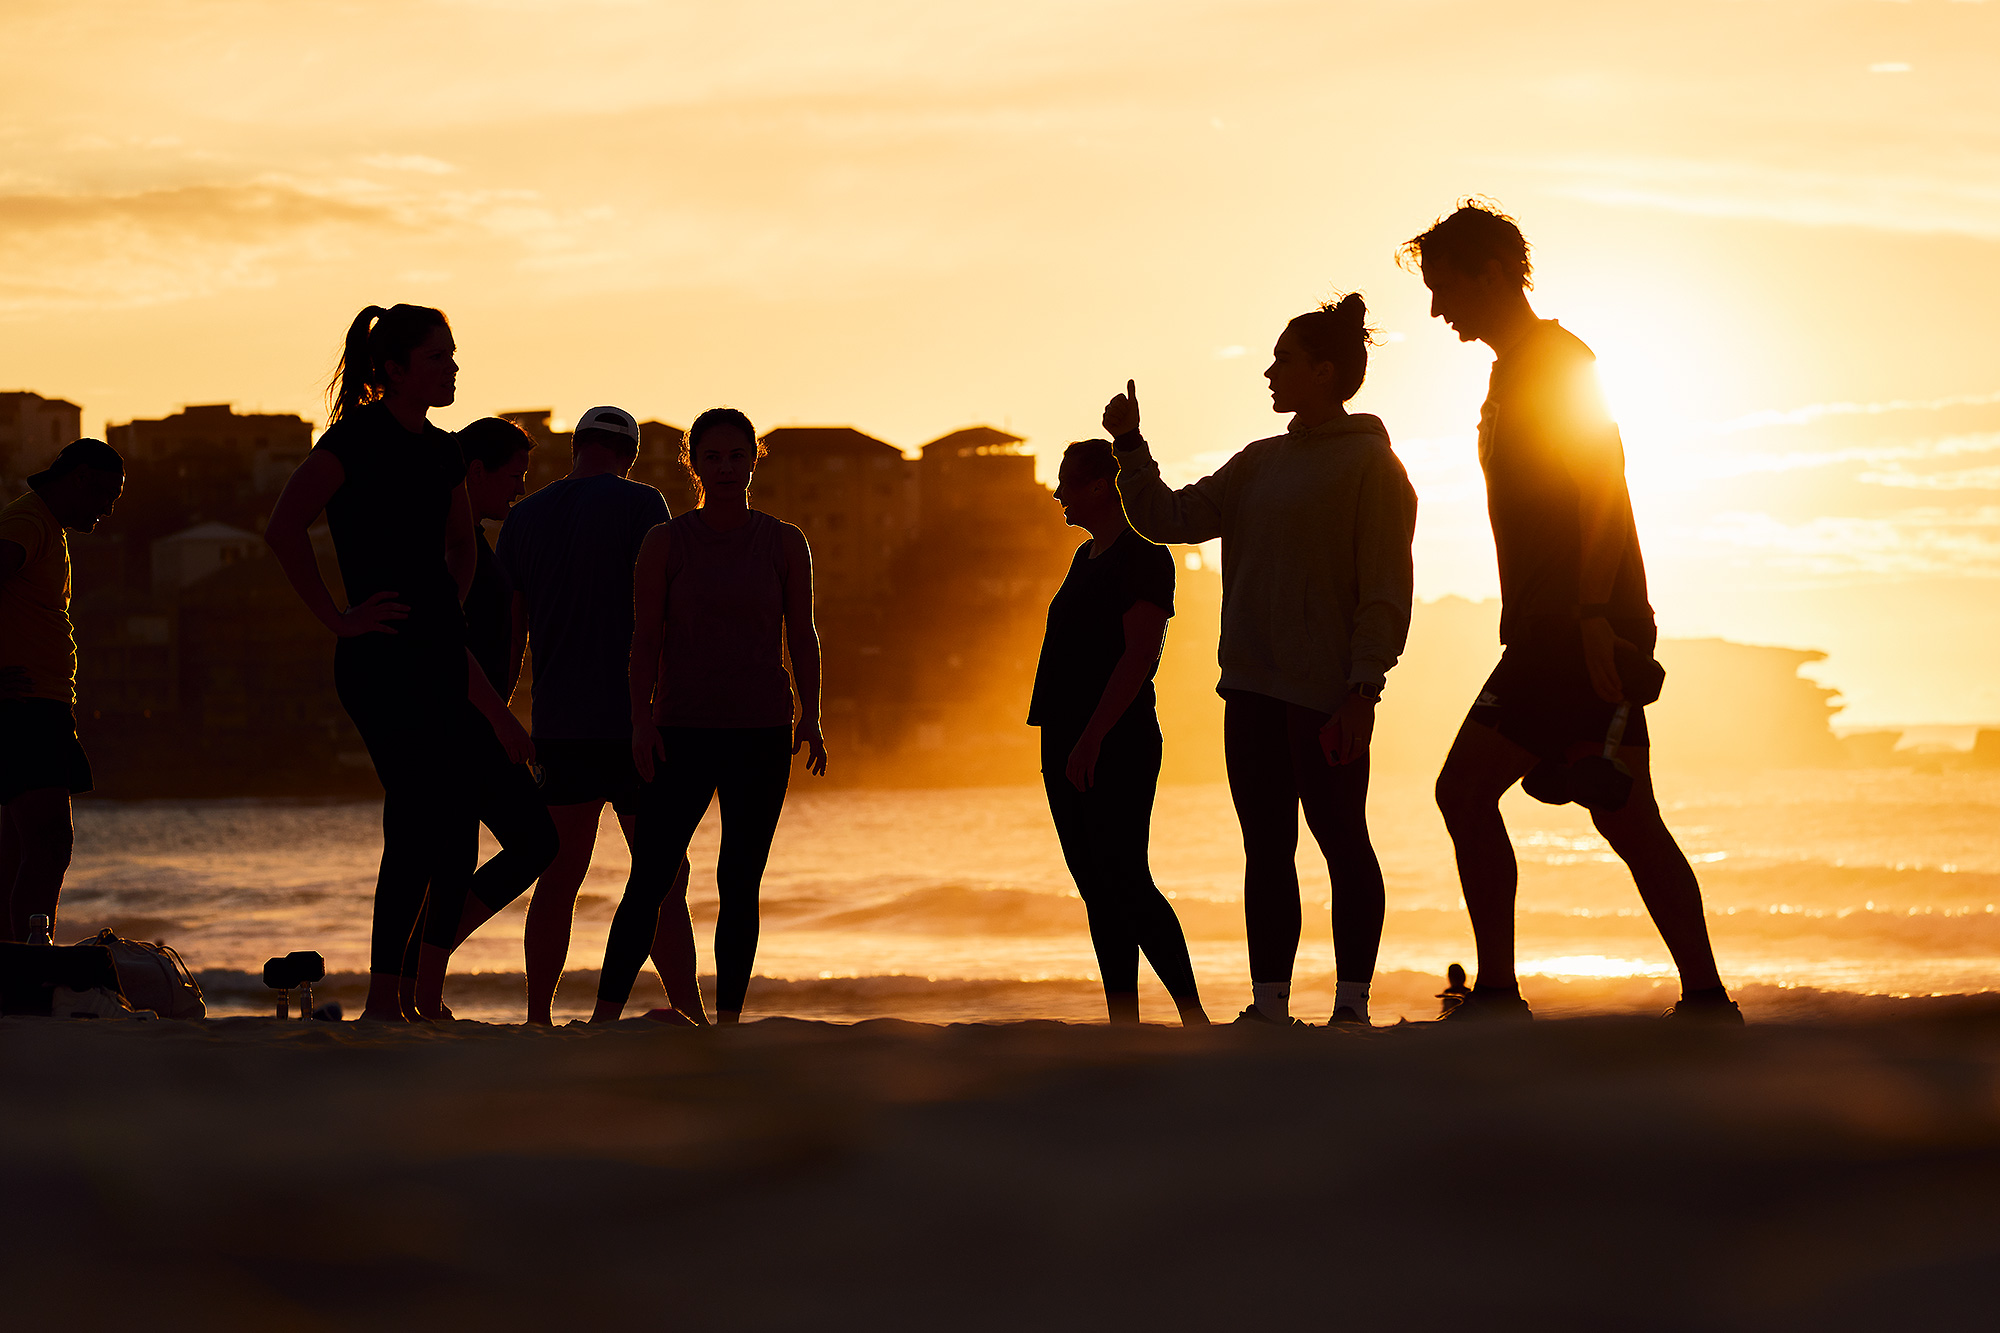 Training group, first light